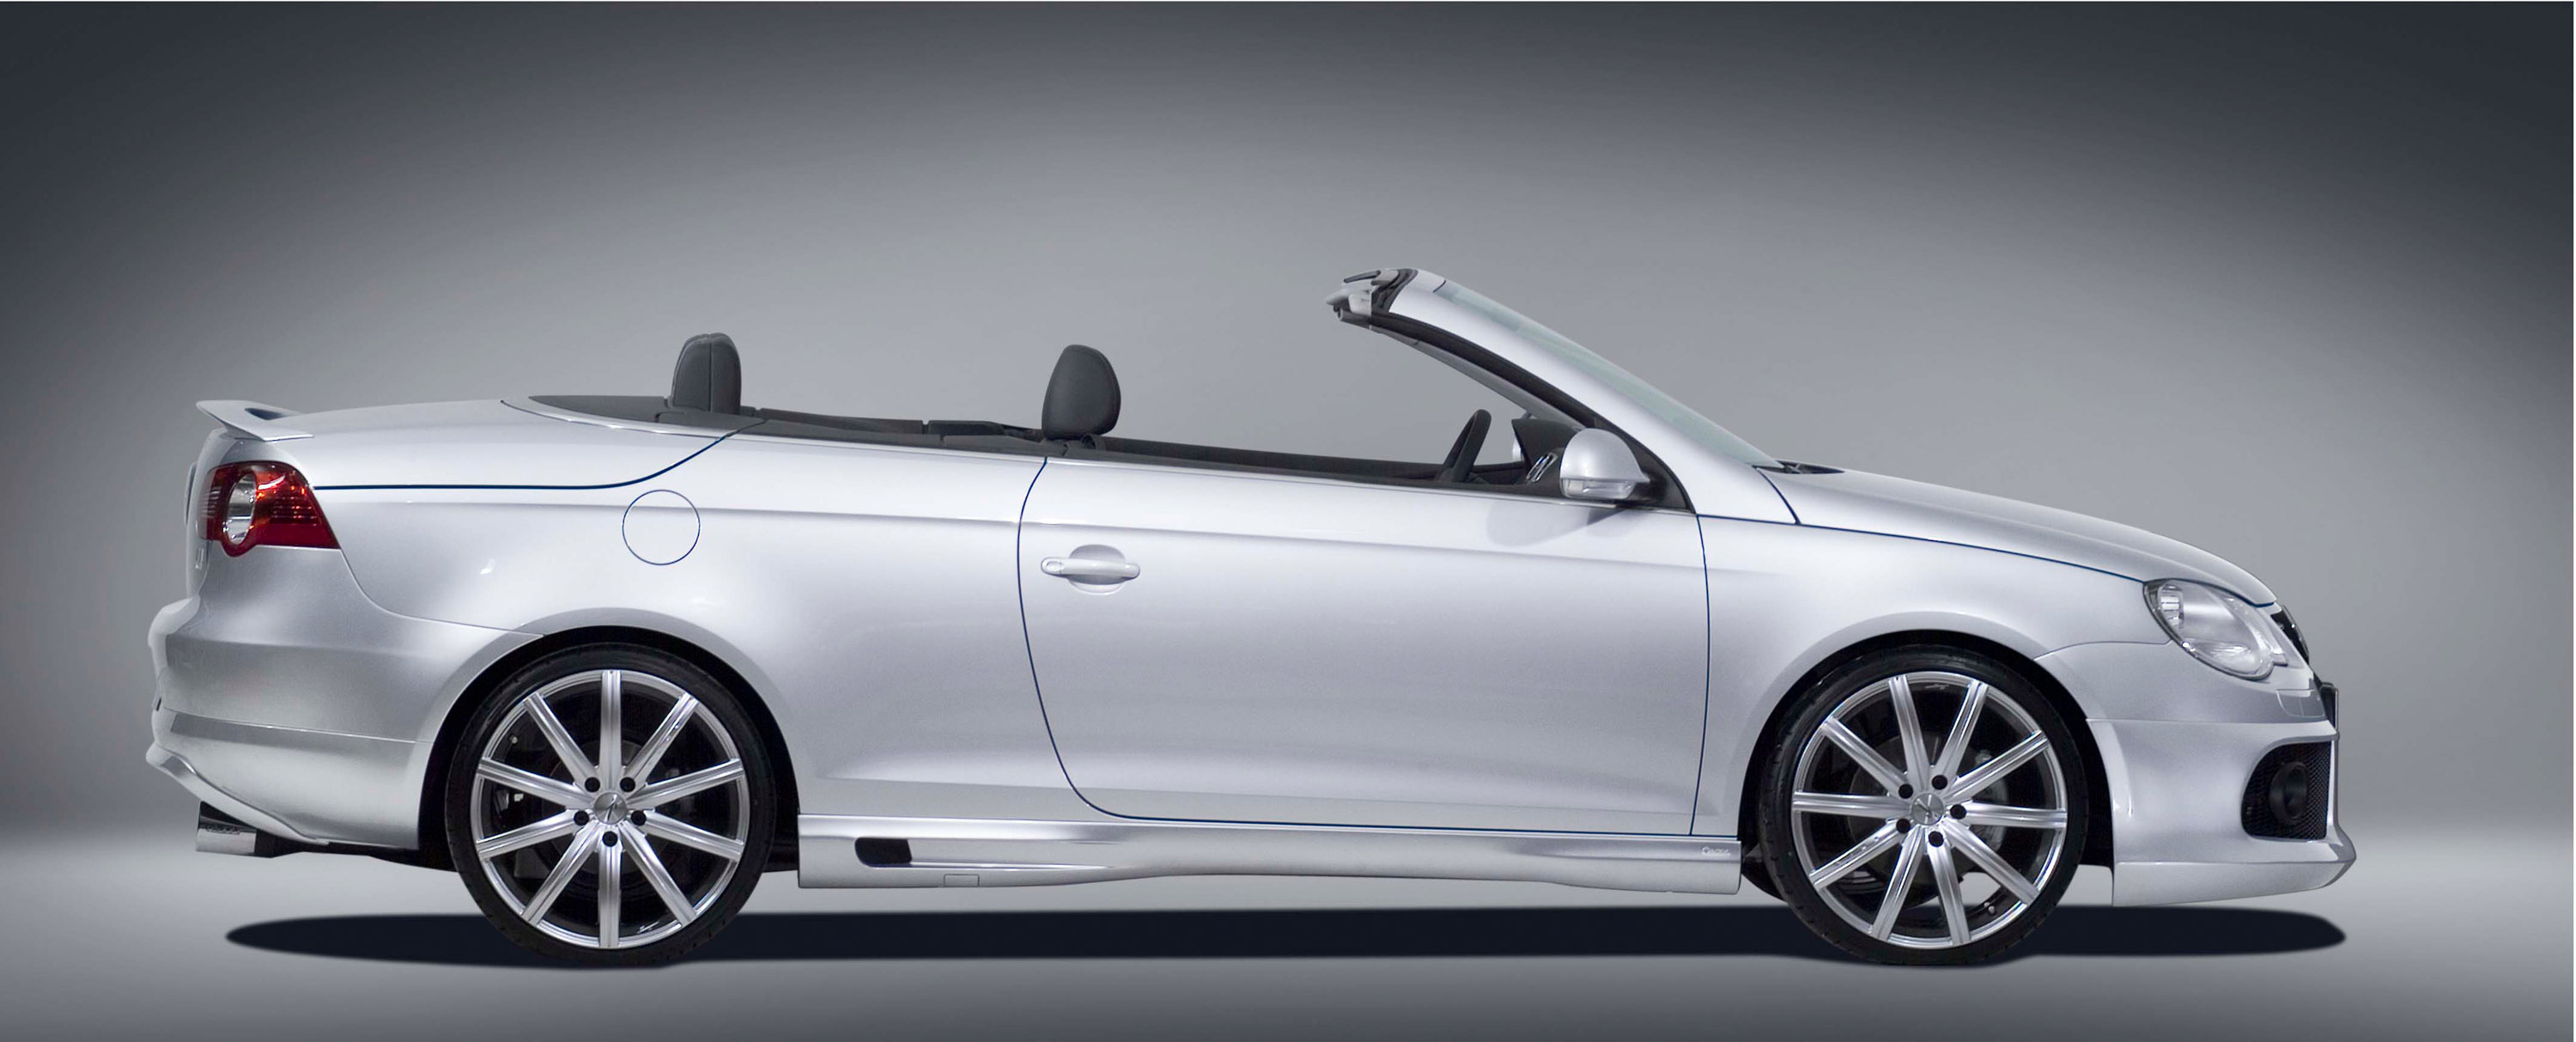 b b vw eos sport cabrio up to 500 hp 650 nm. Black Bedroom Furniture Sets. Home Design Ideas